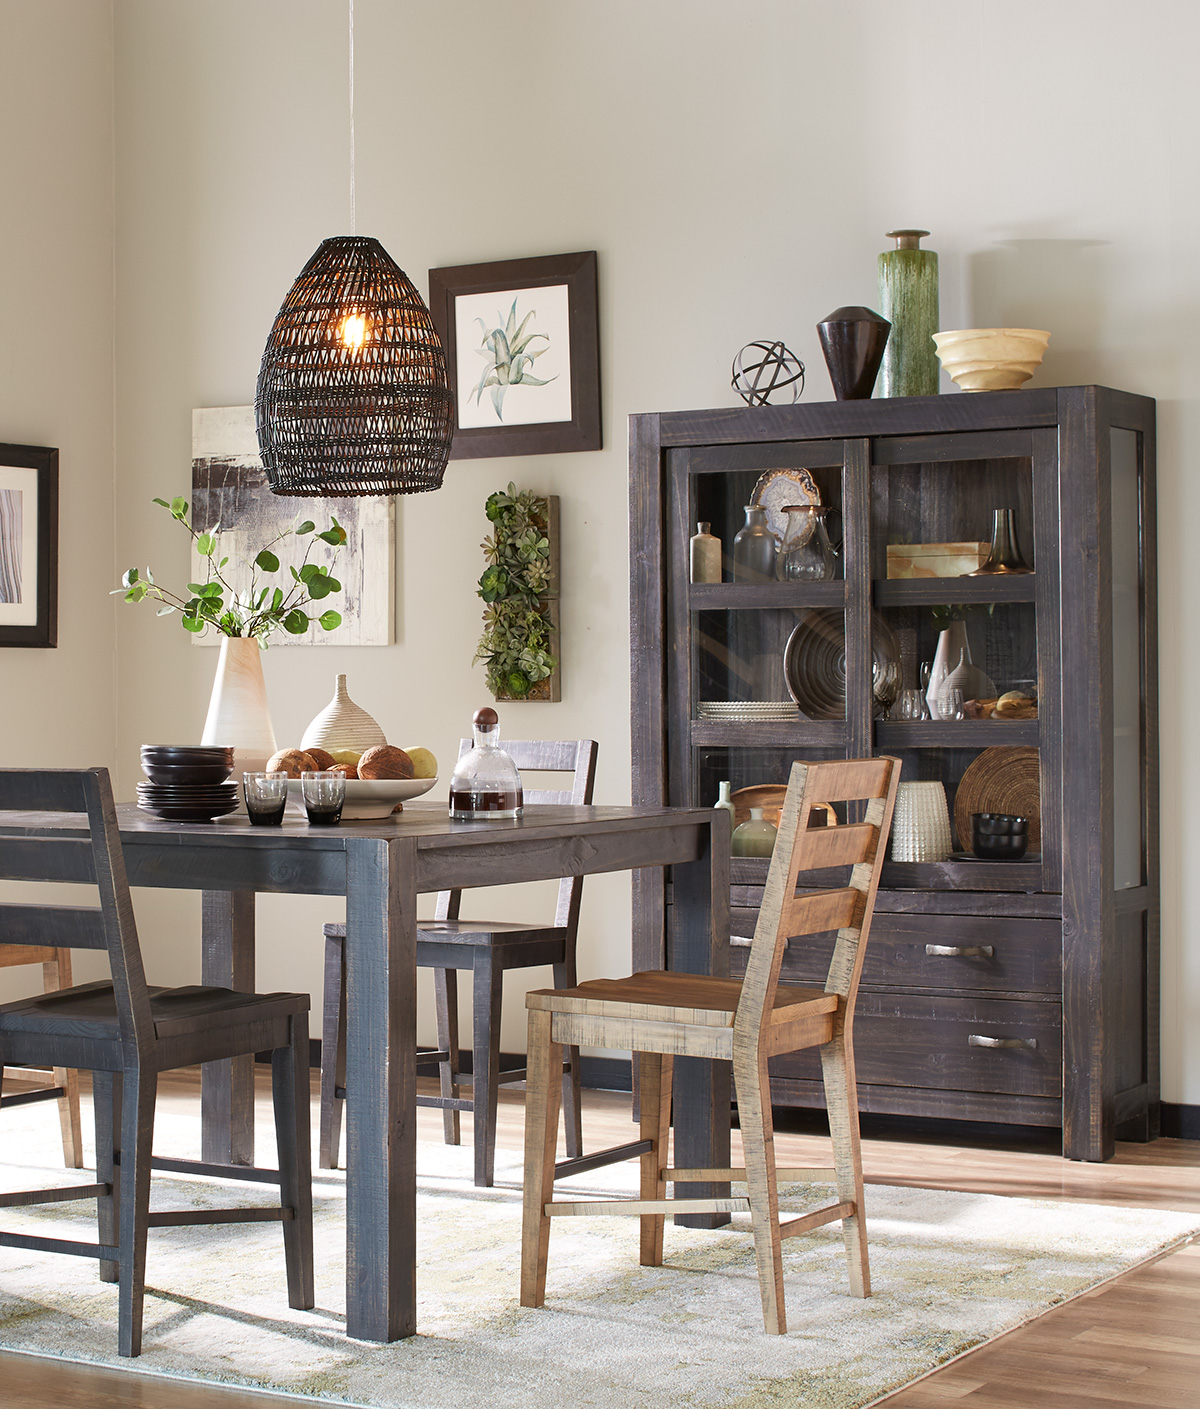 32 Dining Room Storage Ideas: Dining Room Design: Storage And Display Options